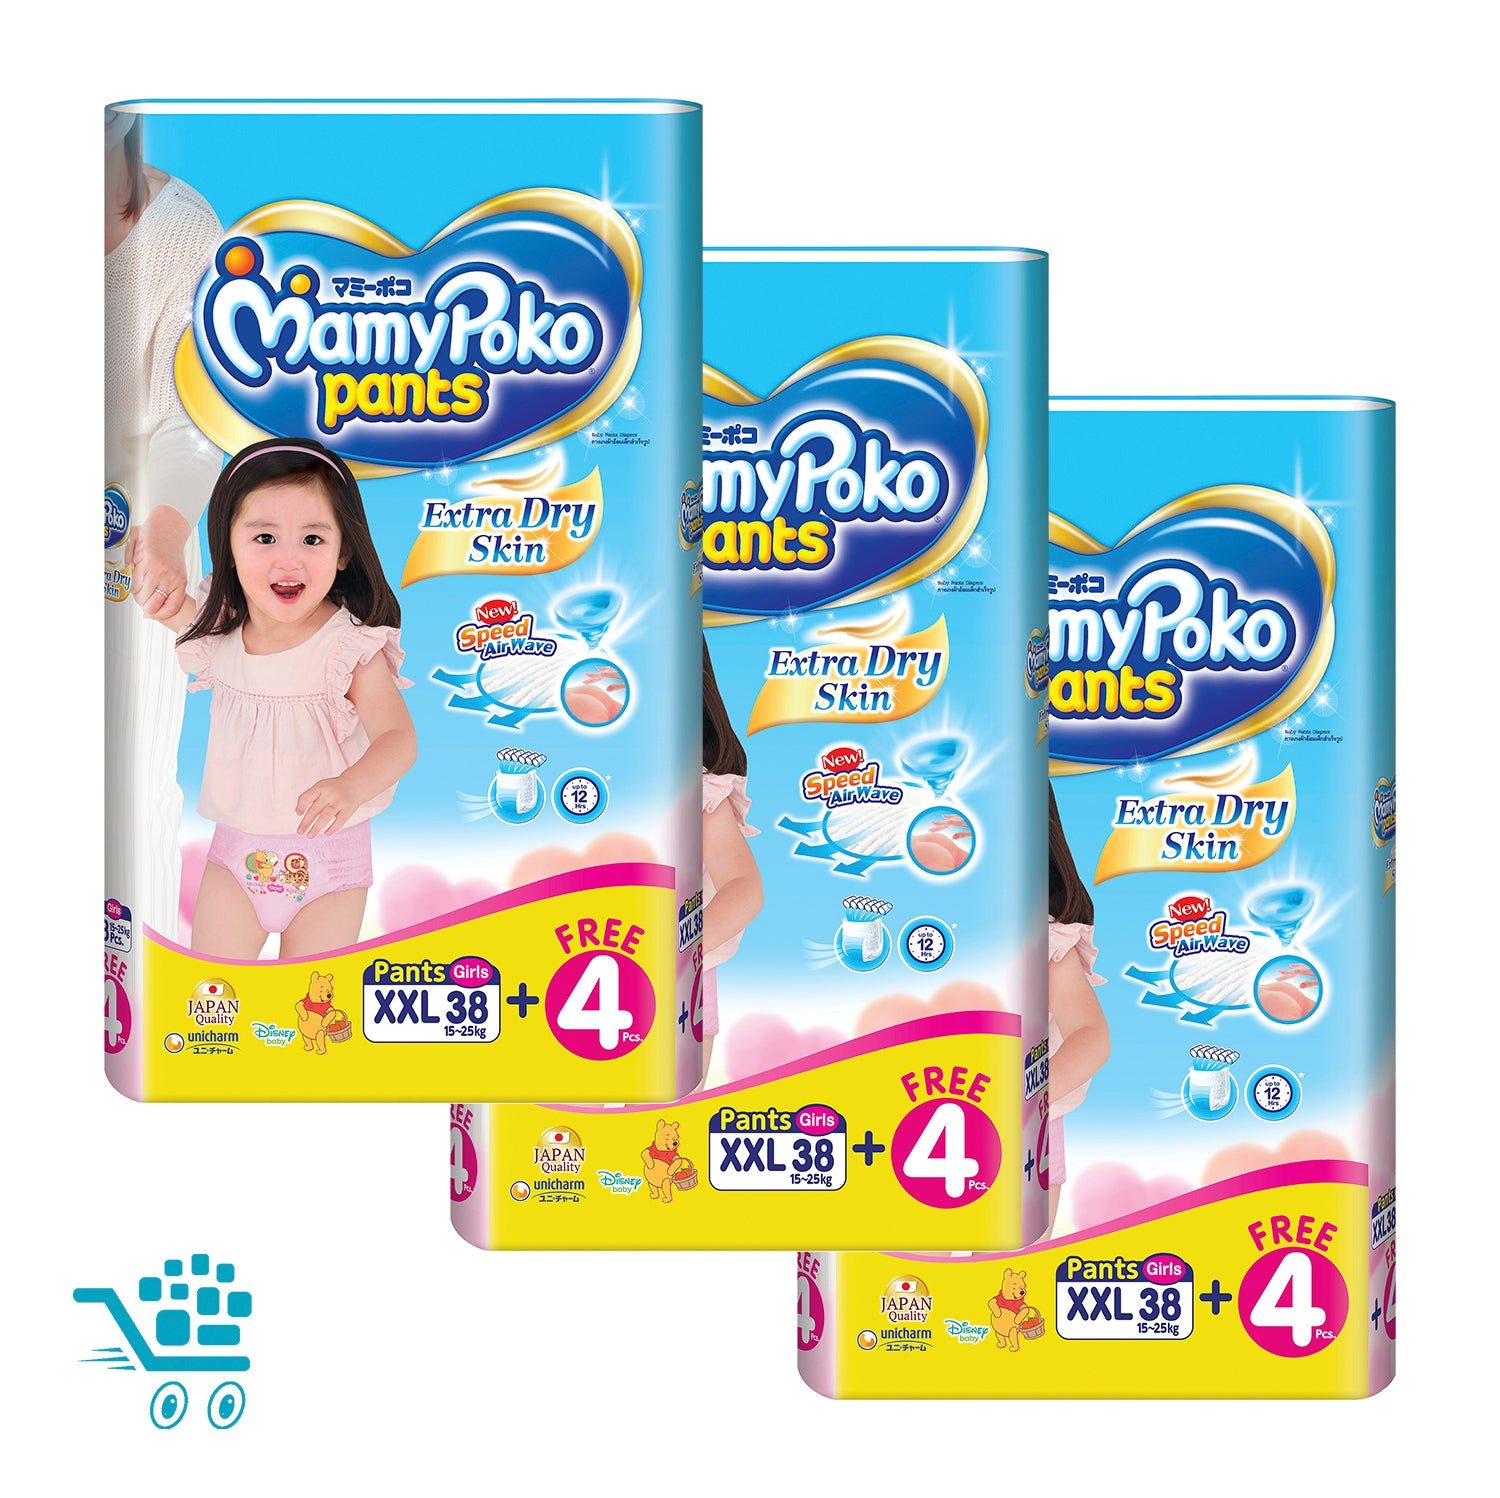 MamyPoko Extra Dry Skin Pants Bonus Pack Girl XXL 38+4 pieces x 3 packs